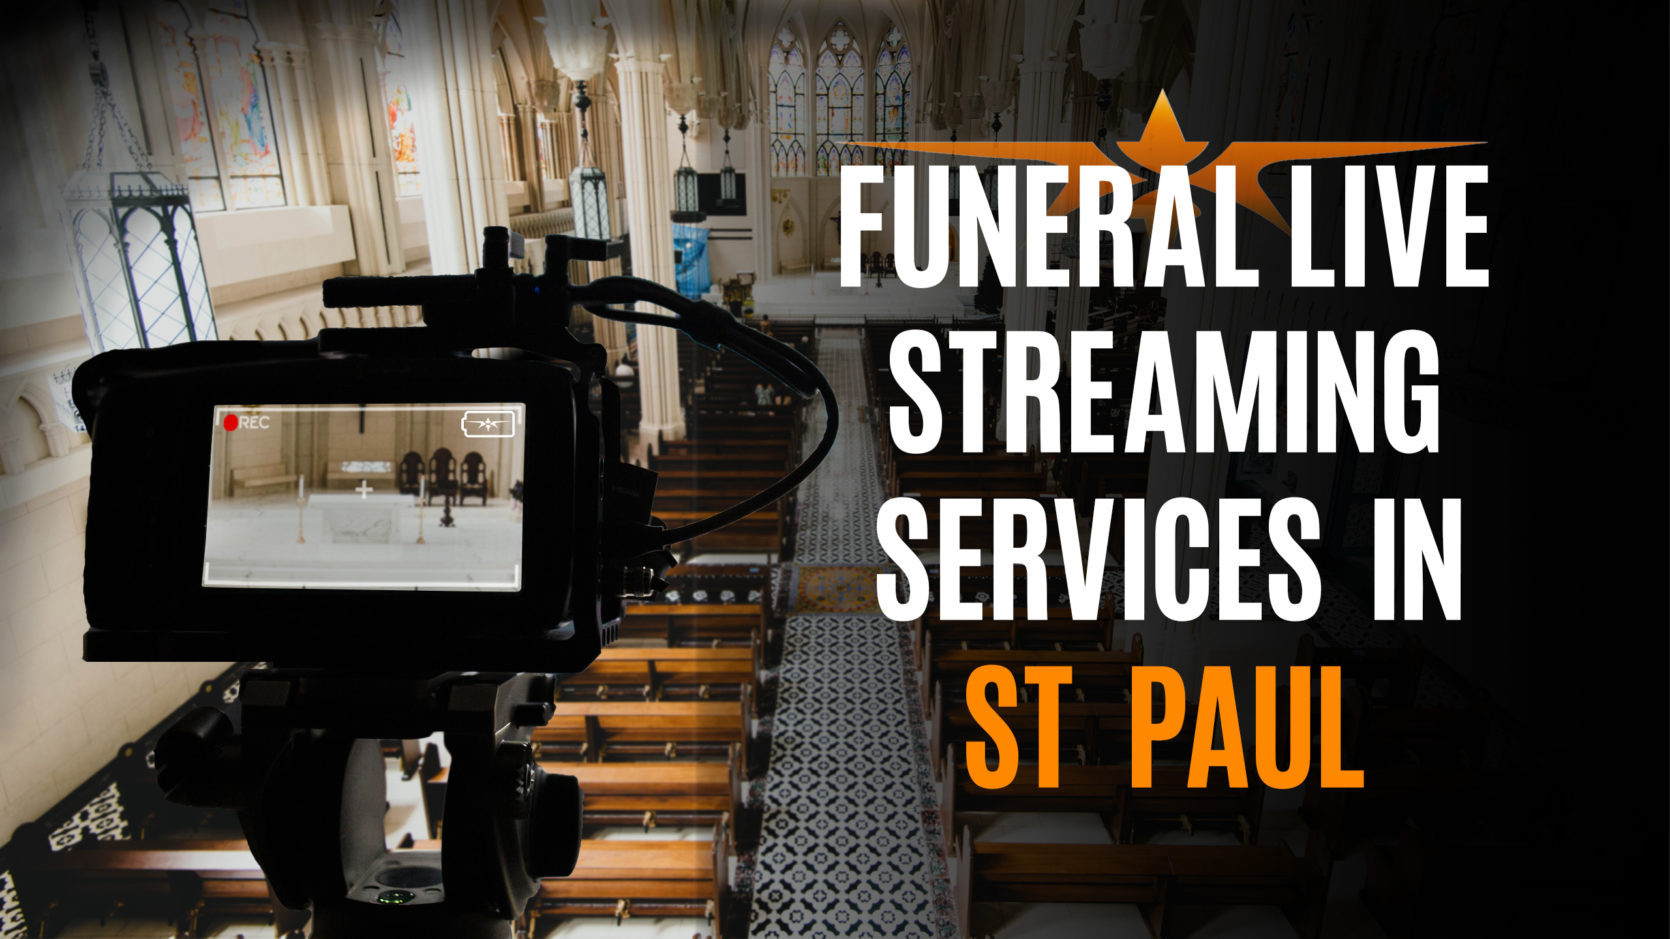 Funeral Live Streaming Services in St. Paul